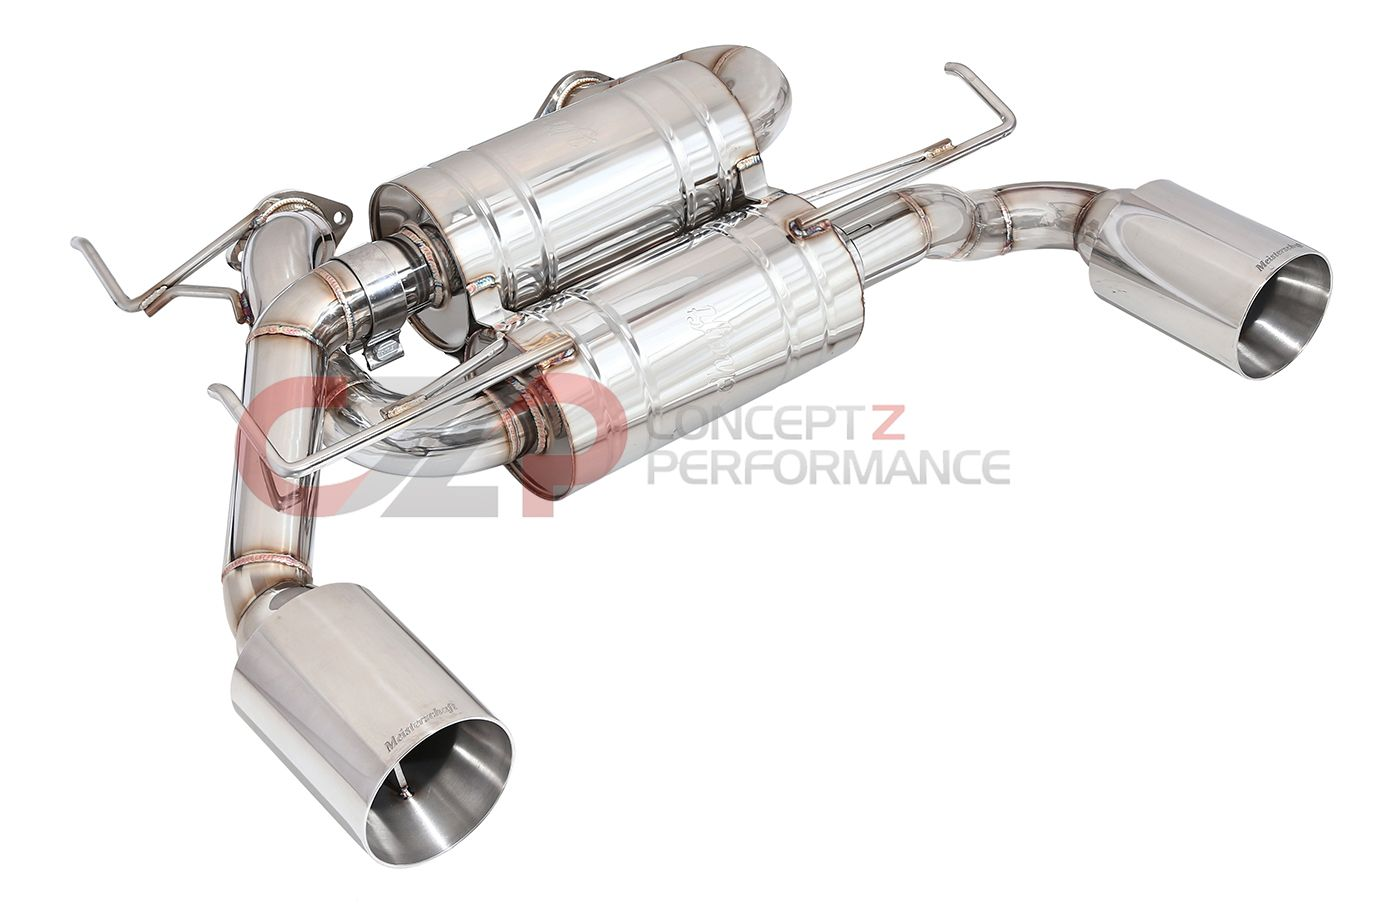 GTHAUS Musa GTS Round Split SS Exhaust System,  IPL Edition - Infiniti G37 08-13 & Q60 14-15 Coupe CV36